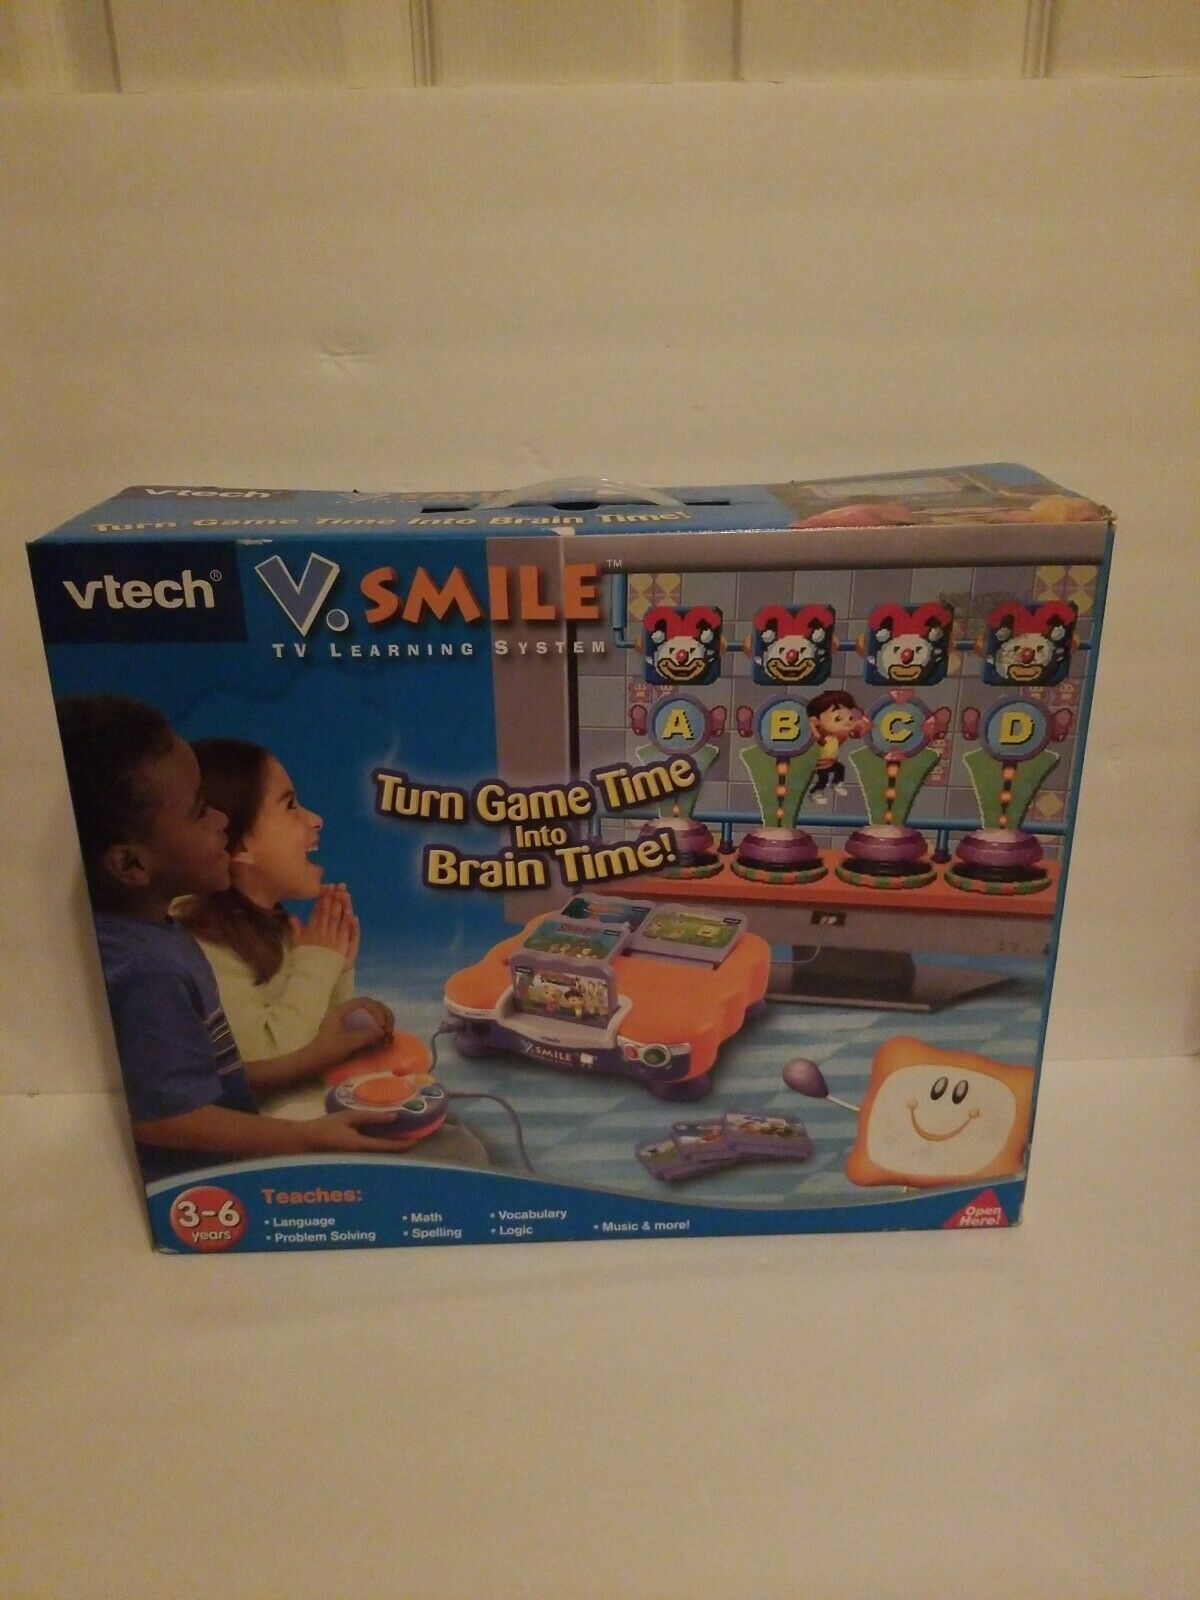 VTech 80-075200 V.Smile TV Learning System